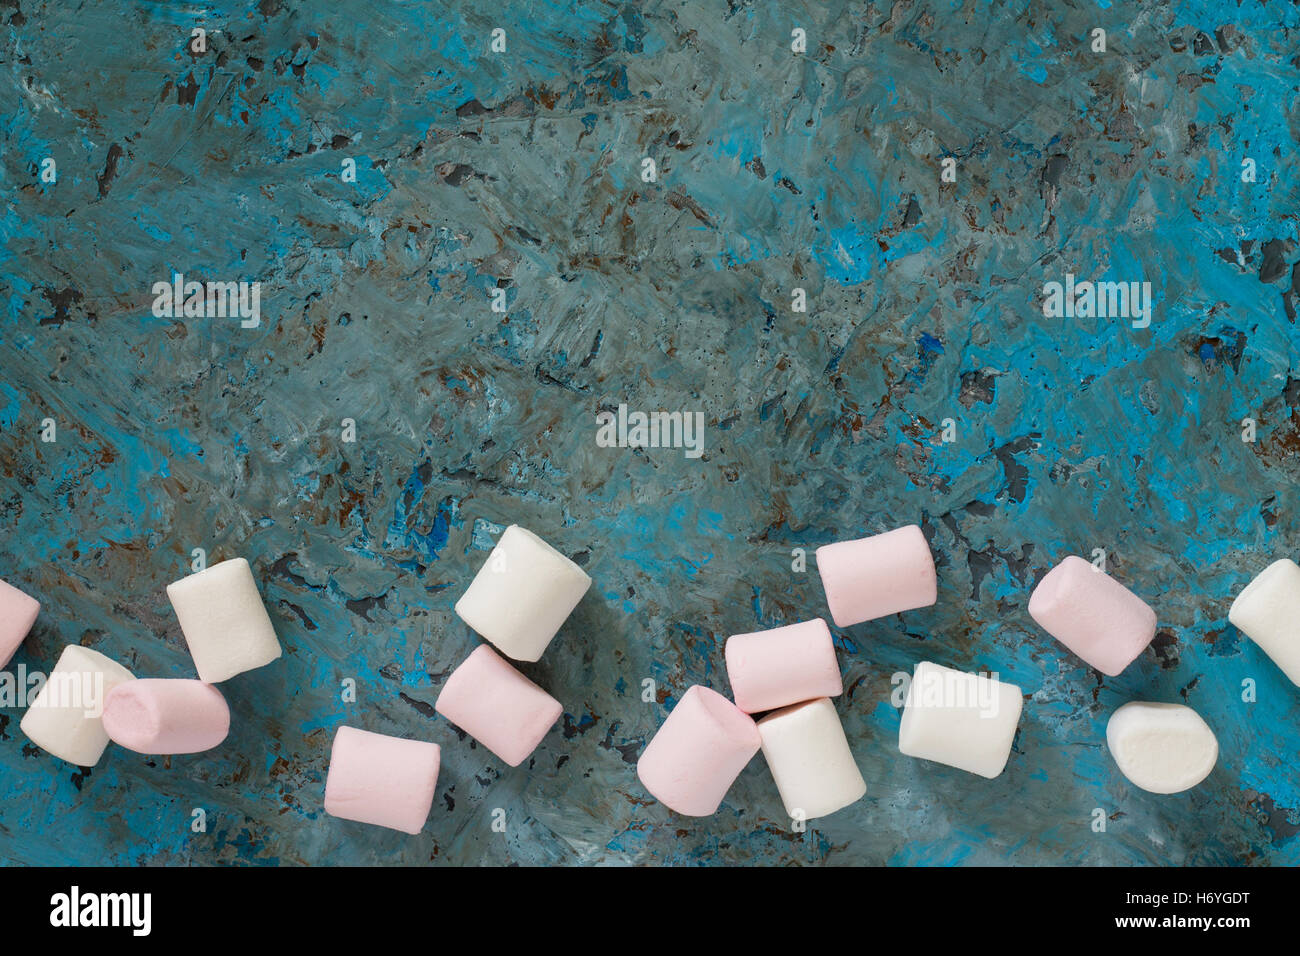 White and pink marshmallows in a ceramic bowl on blue concrete background. View from above. - Stock Image